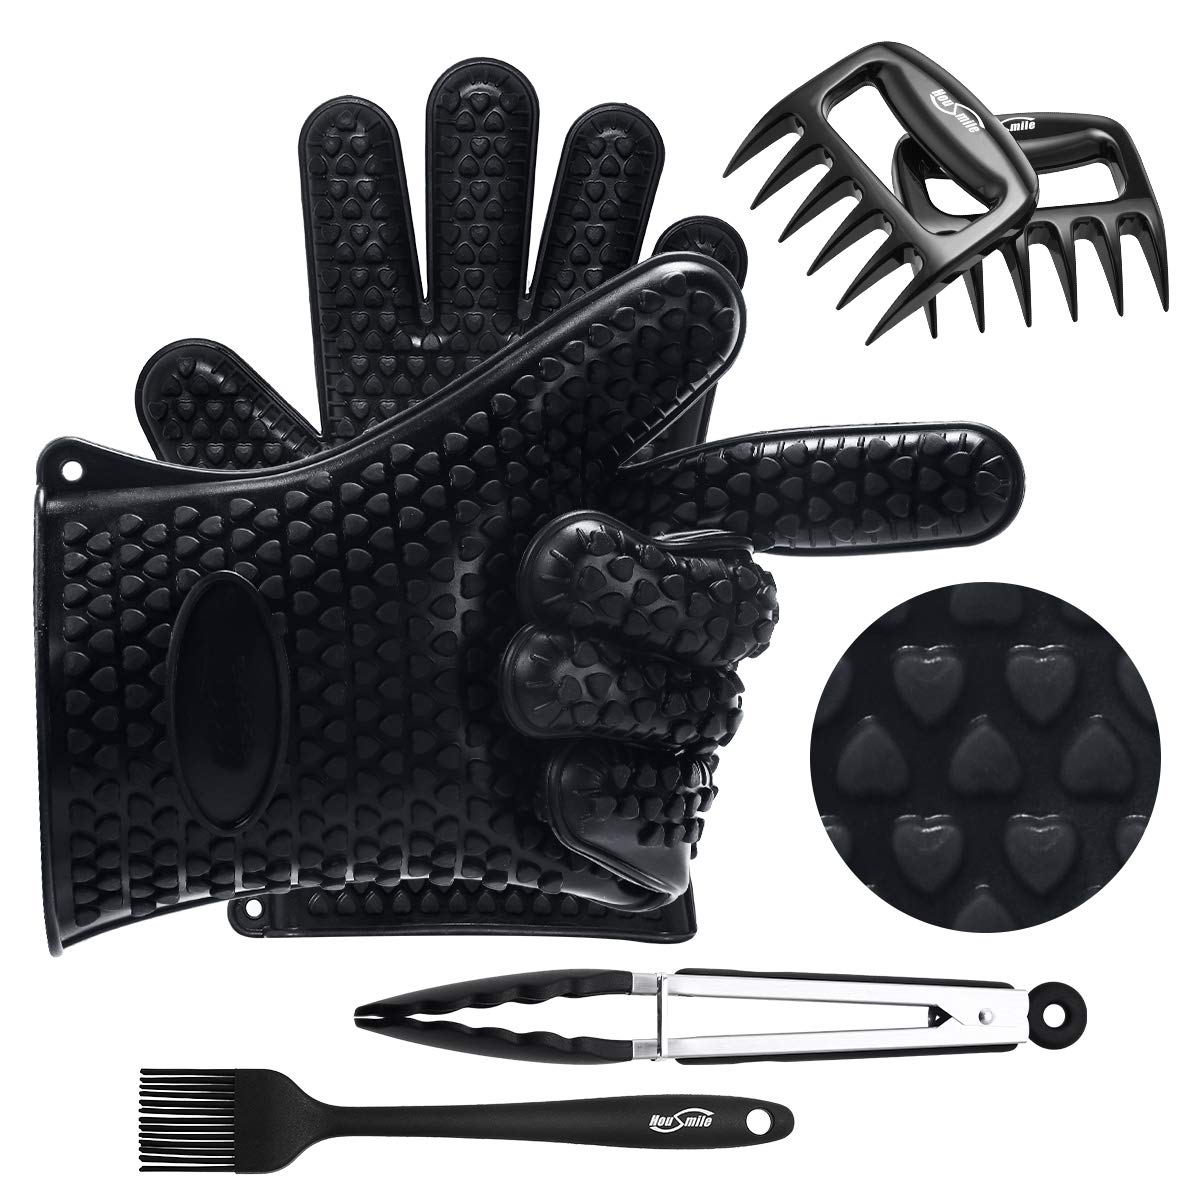 Aibocn BBQ Grilling Cooking Gloves with Pork Meat Claws, Grill Brush & Kitchen Tong, Silicone Gloves Heat Resistant Up to 446F, Non-Slip 4-Piece BBQ Grill Accessories for Barbecue Party, Baking